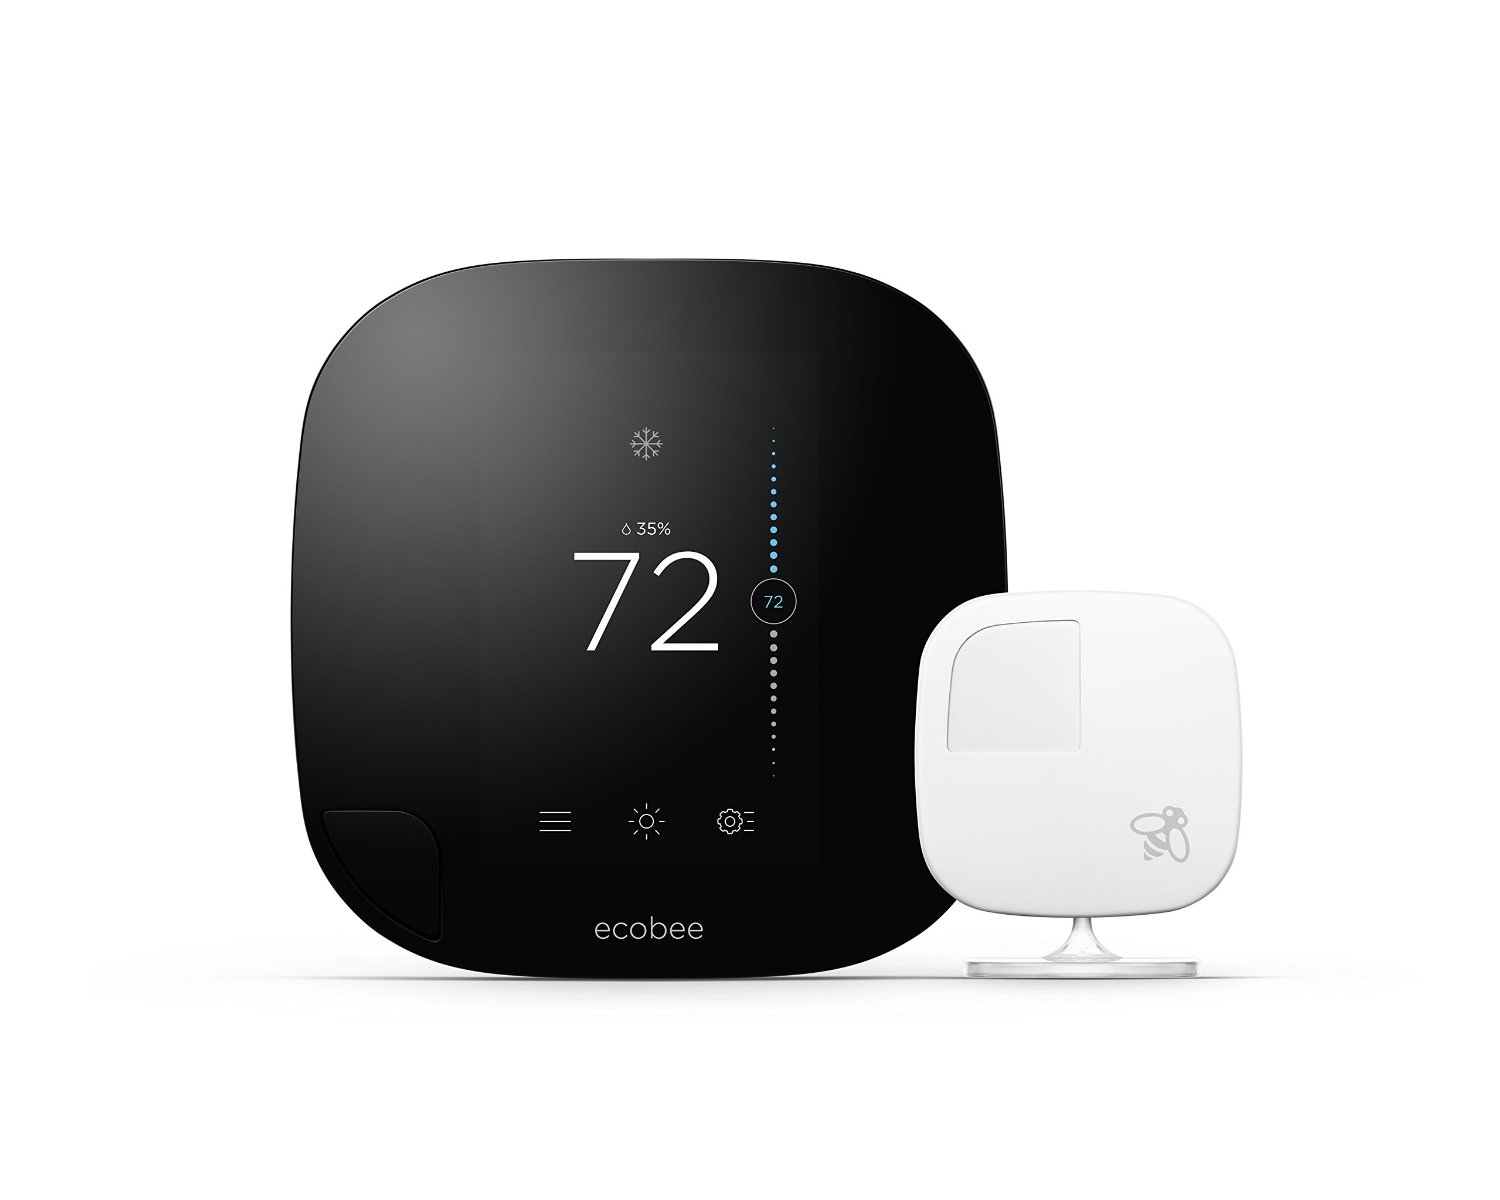 Step By Guide On How To Install A Smart Thermostat Wiring Products Help Ensure That Your Home Will Be Ready For The Ecobee 3